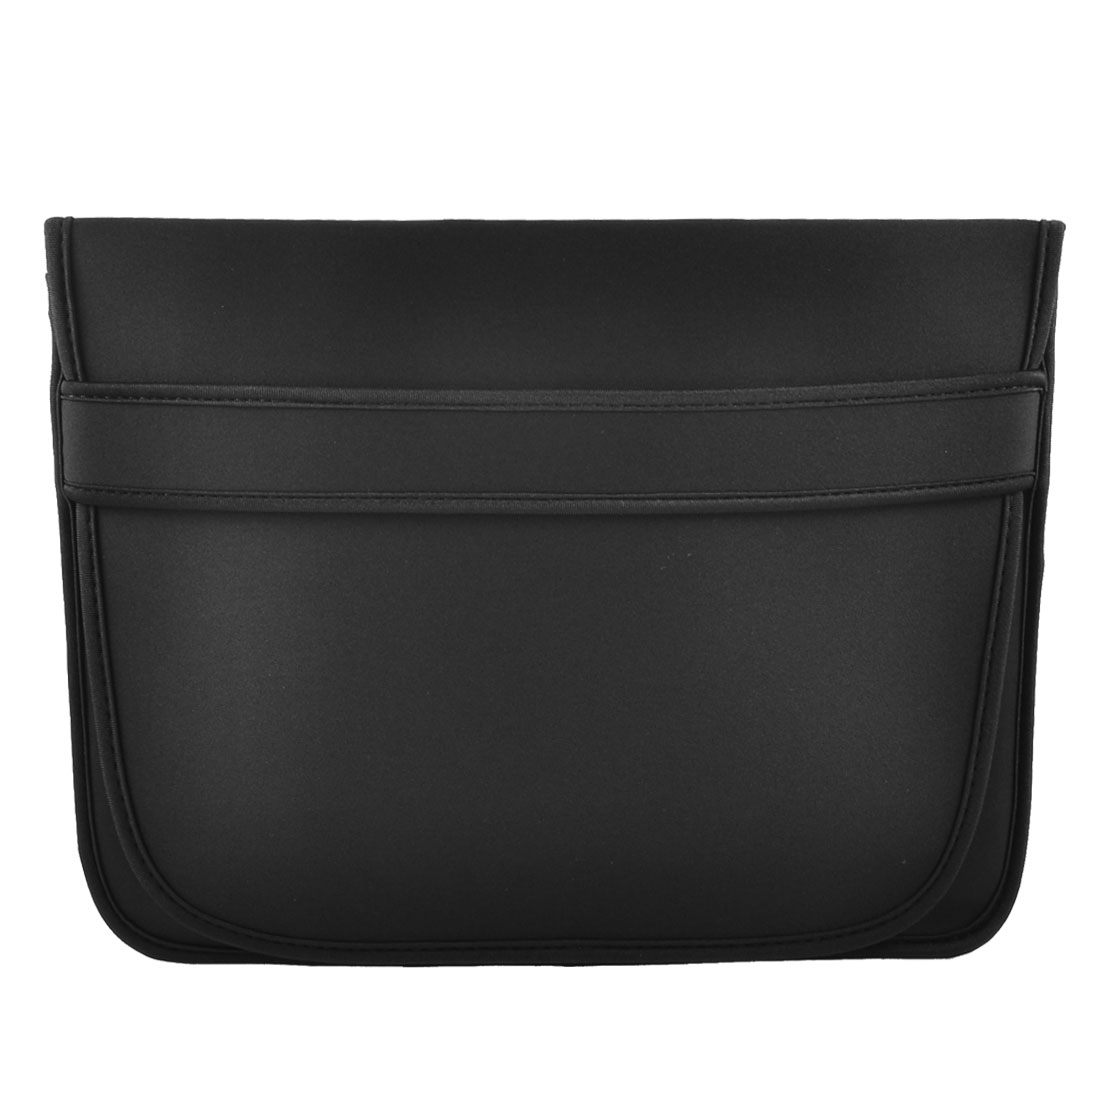 "11.6"" 12"" Tablet Laptop Flip Up Neoprene Sleeve Bag Case Pouch Cover Black"